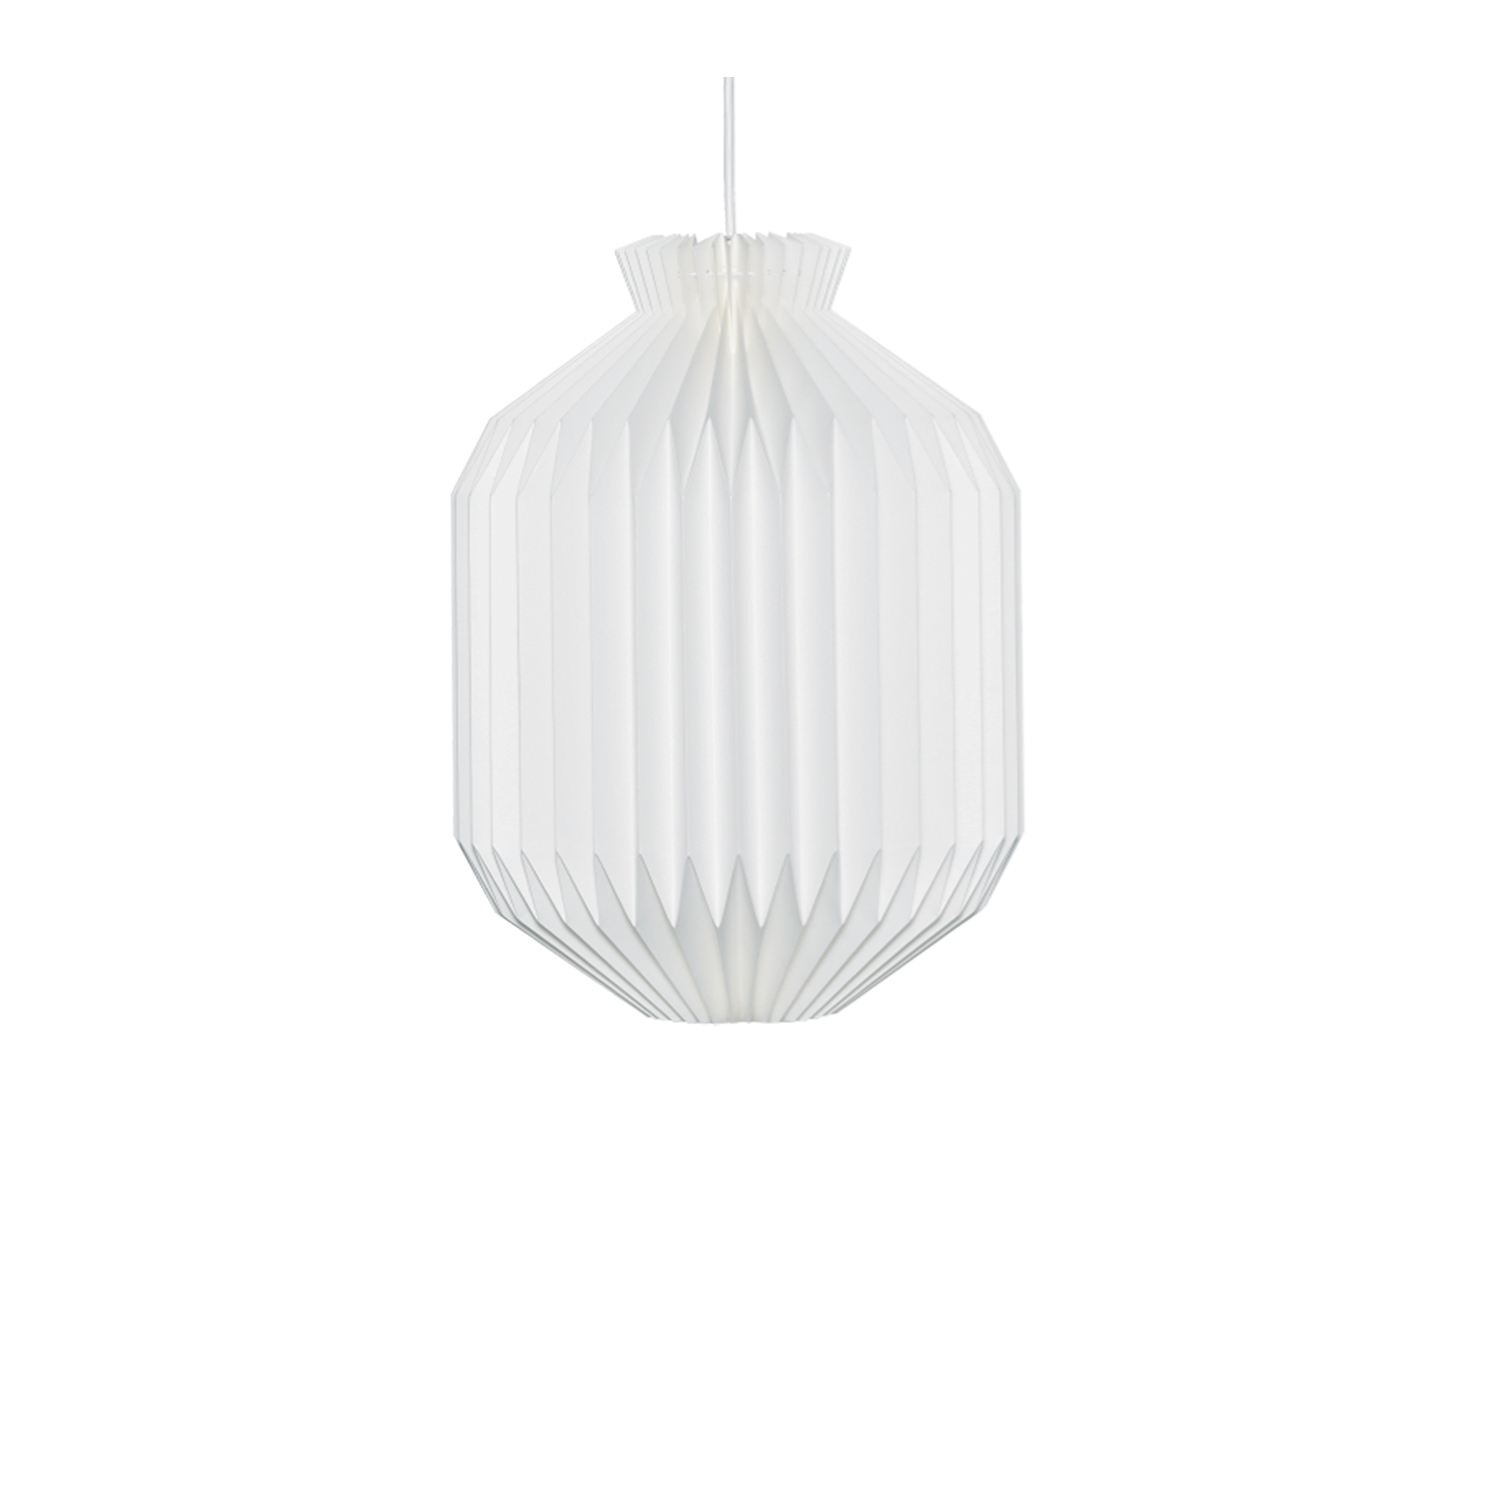 Model 105 Pendant - In 1945 Mogens Koch simplified the myriad of cross-pleats in Kaare Klint's Fruit lamp to create this more stringent lampshade design. The oval shape gives the lamp a more sedate expression, closely allied to traditional Japanese paper lamps. The enclosed shape makes it suitable for hanging from a high ceiling. 105 Pendant is available in paper or lampshade foil with two different sizes.   This item is only available for special orders. Please allow for a short delivery delay.   Matter of Stuff